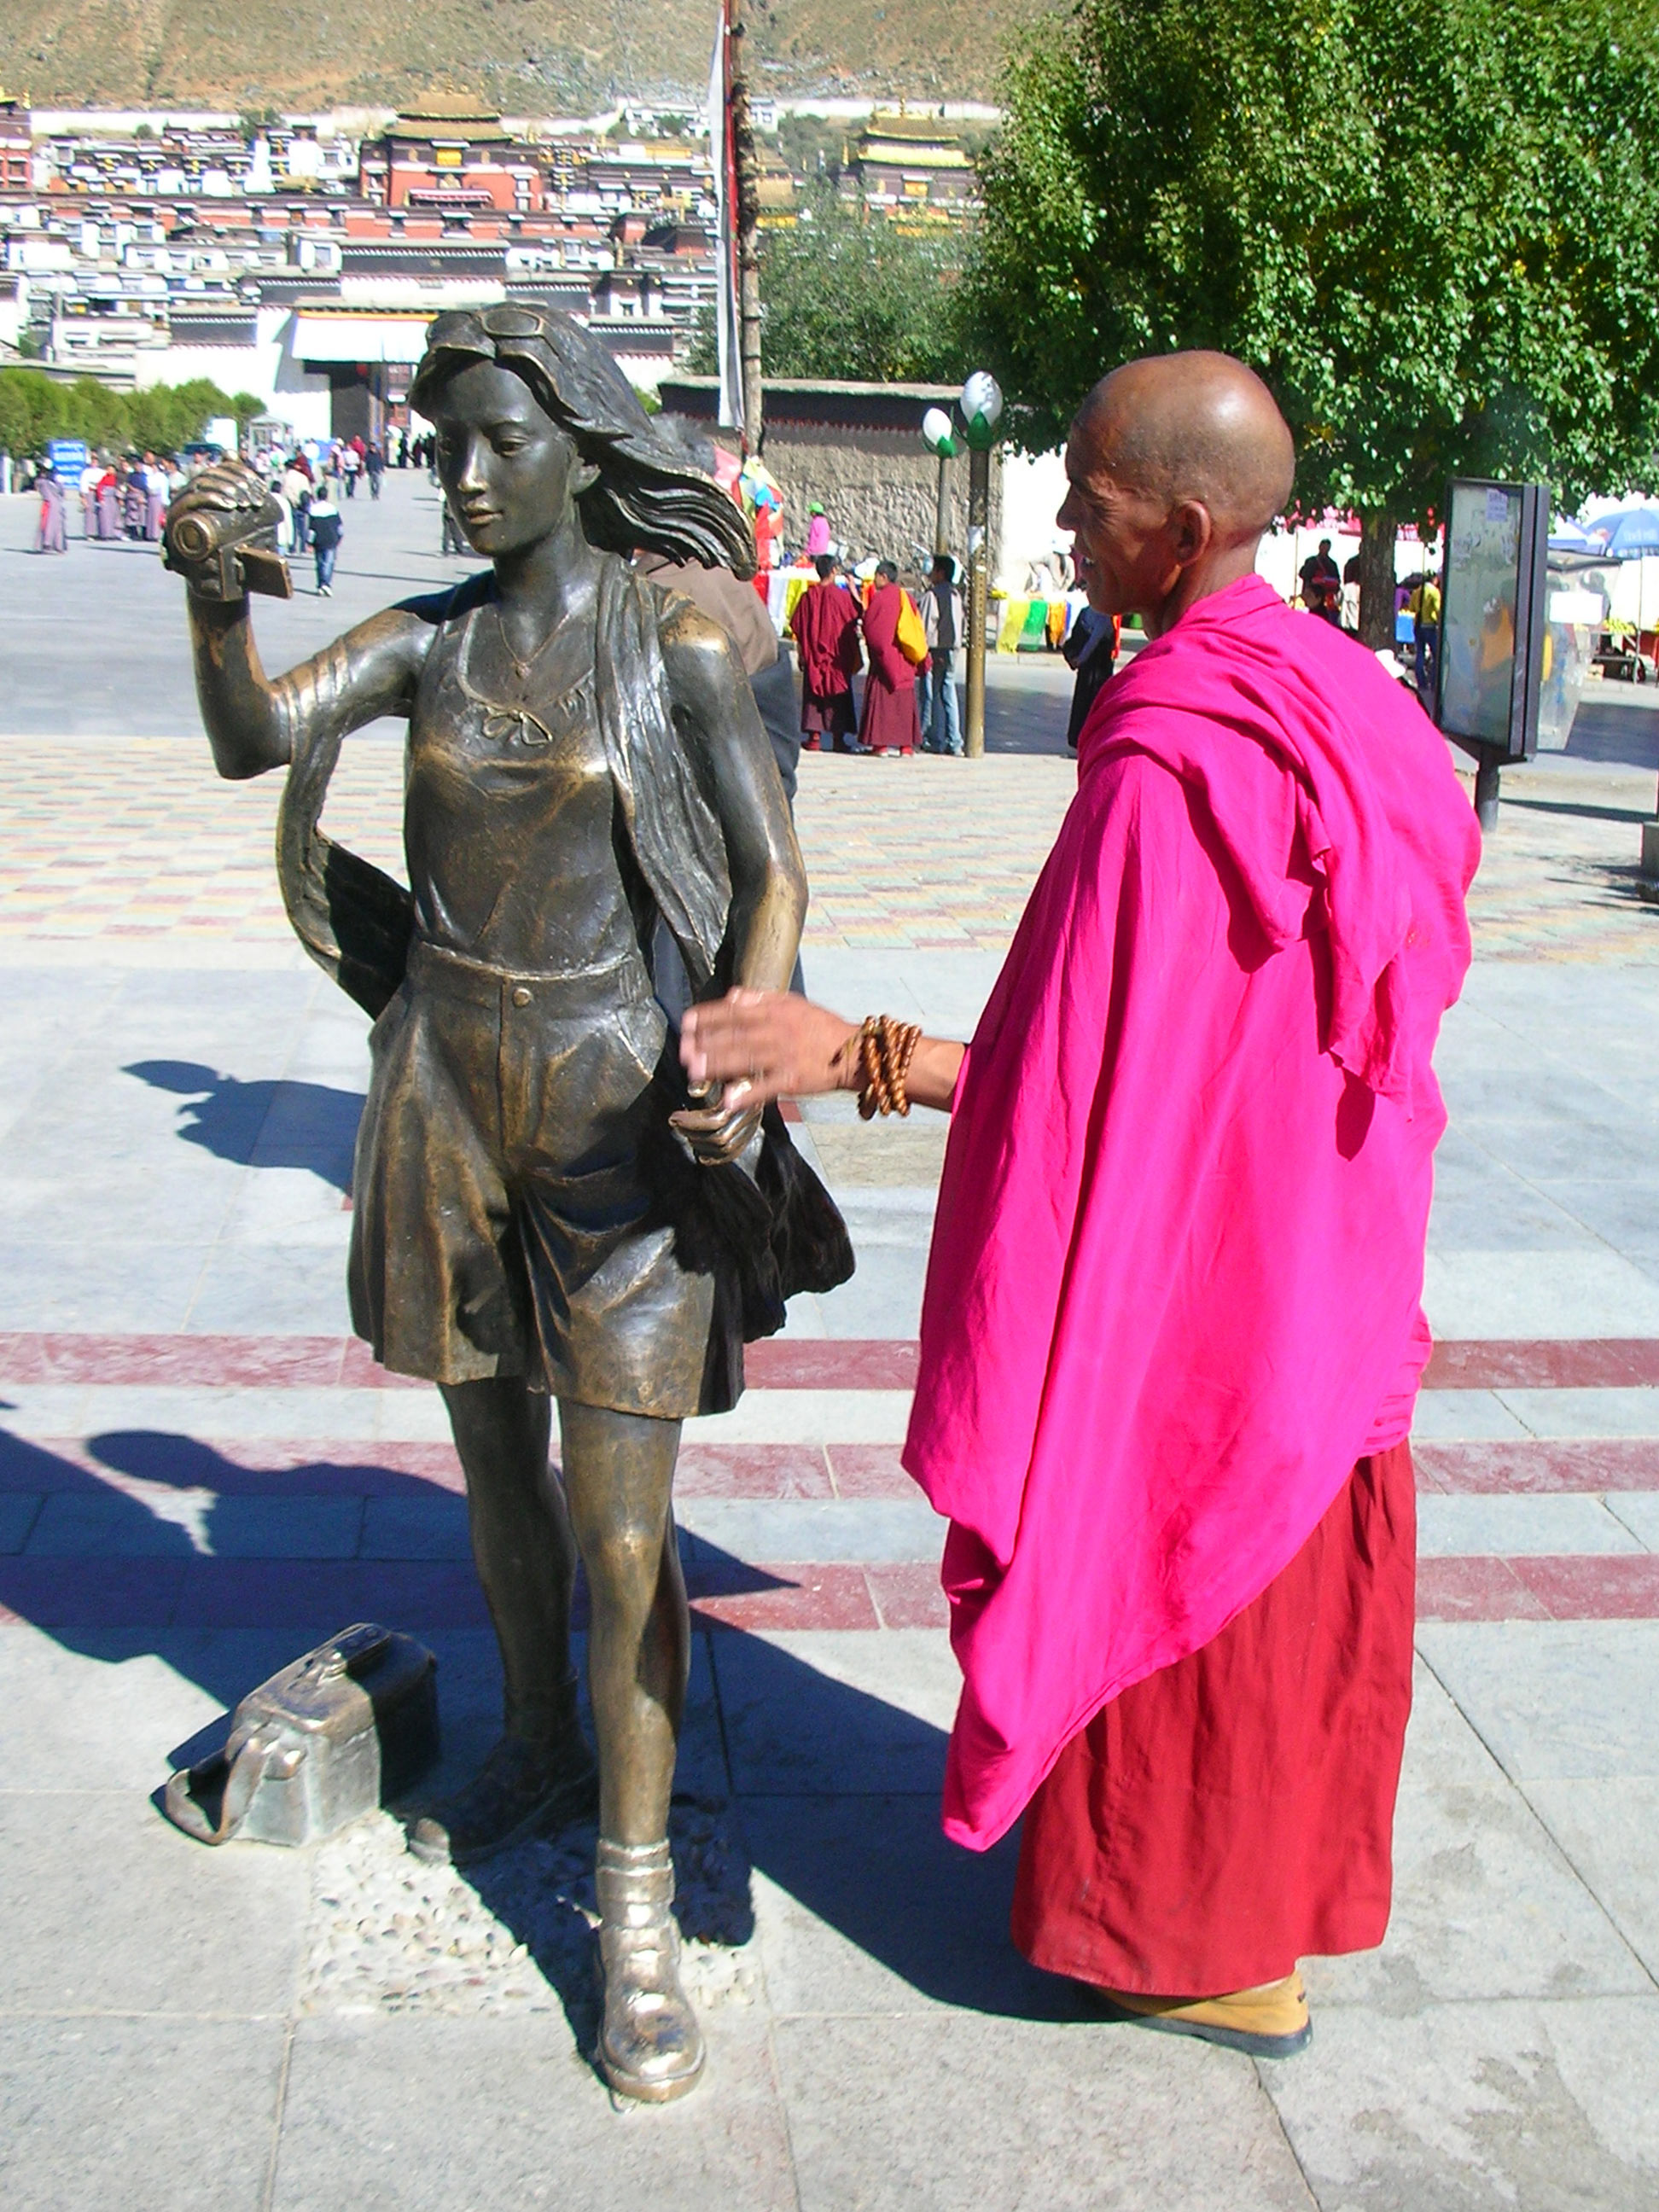 Outside Tashilhunpo Monastery, a monk checks out a statue of a tourist. Is it only me or is there something wrong with this situation? Shouldn't a tourist be checking out a statue of a monk? Whatever.